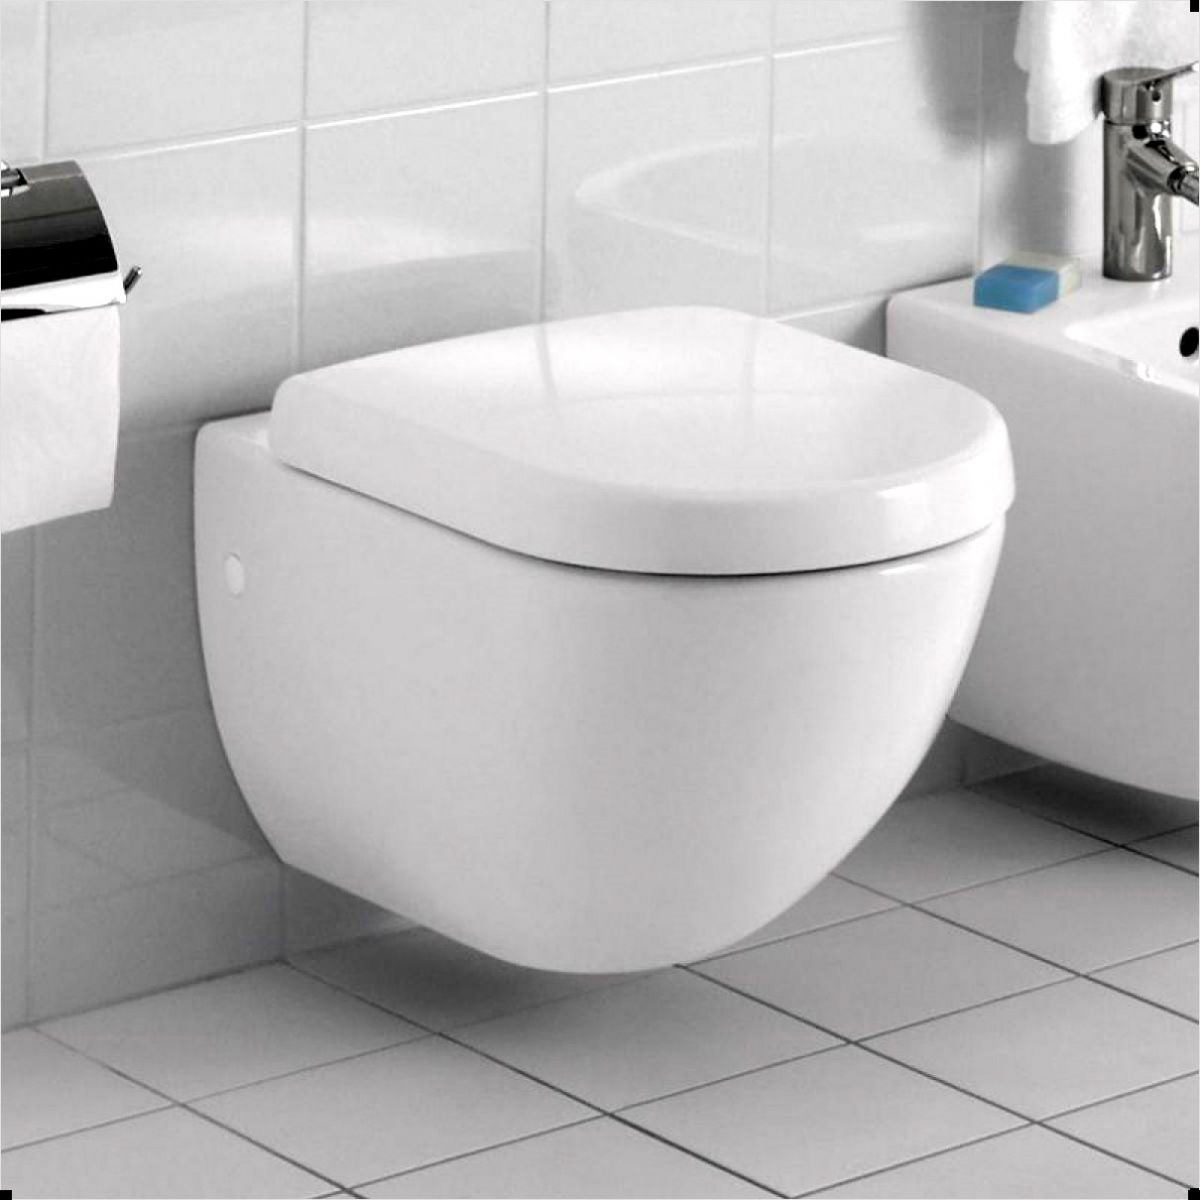 Abacus Bathrooms Simple Compact Wall Hung Toilet Uk